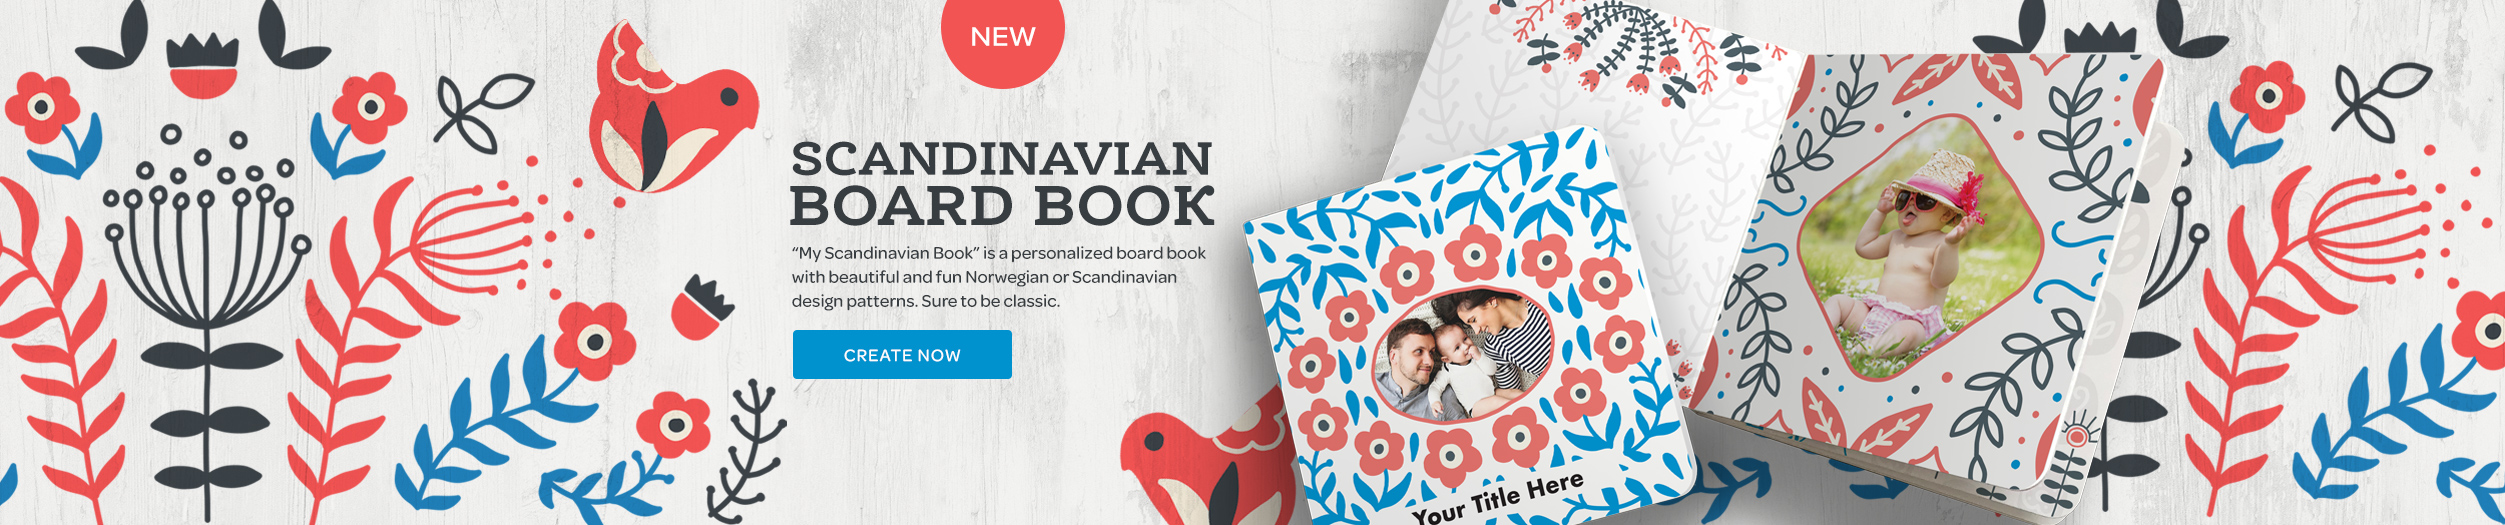 Scandinavian Board Book